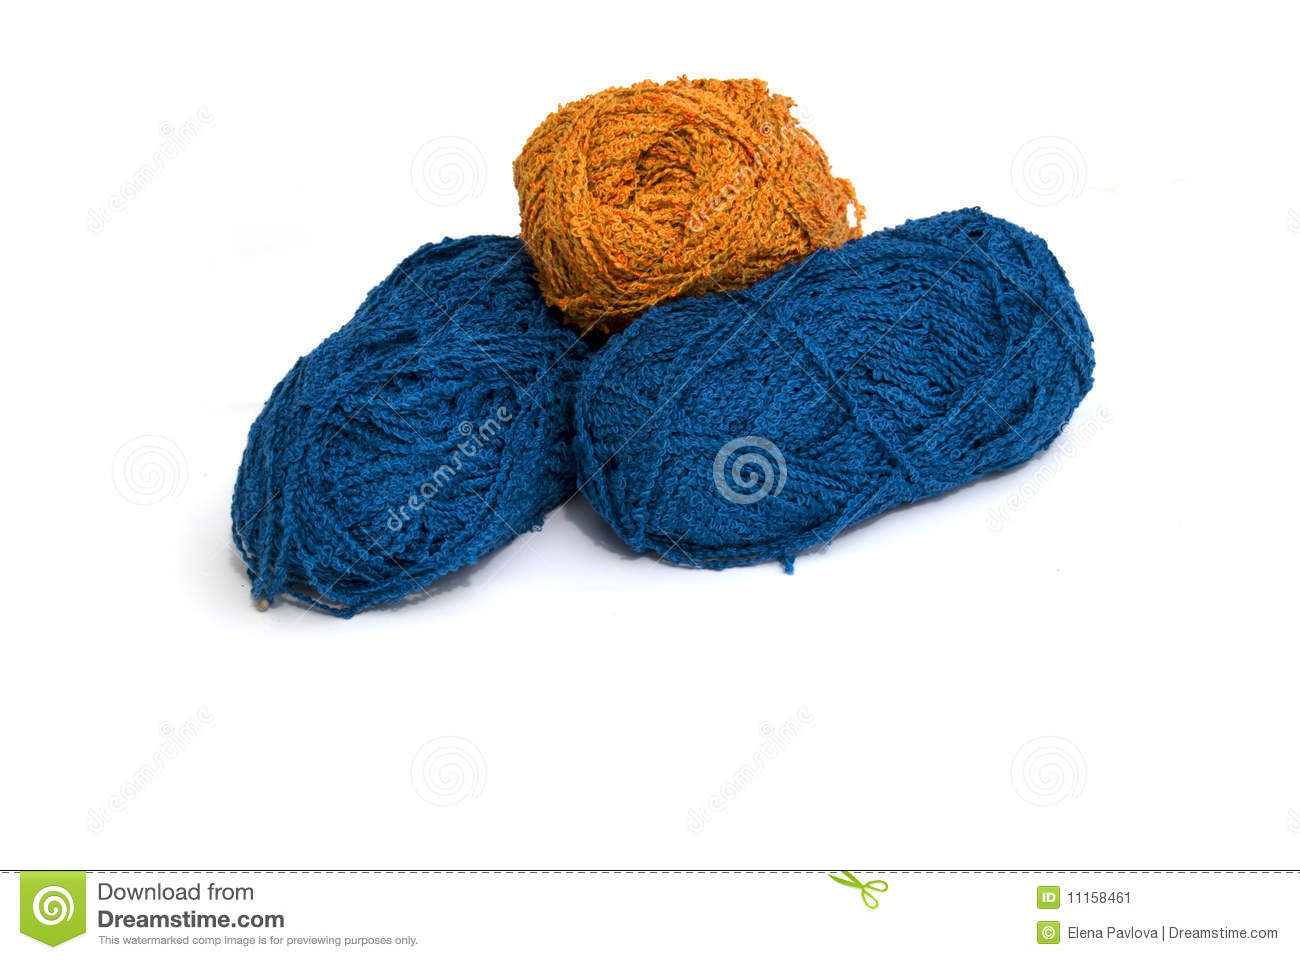 Knitting Patterns Wool And Needles : Wool And Knitting Needles - Isolated Stock Image - Image ...